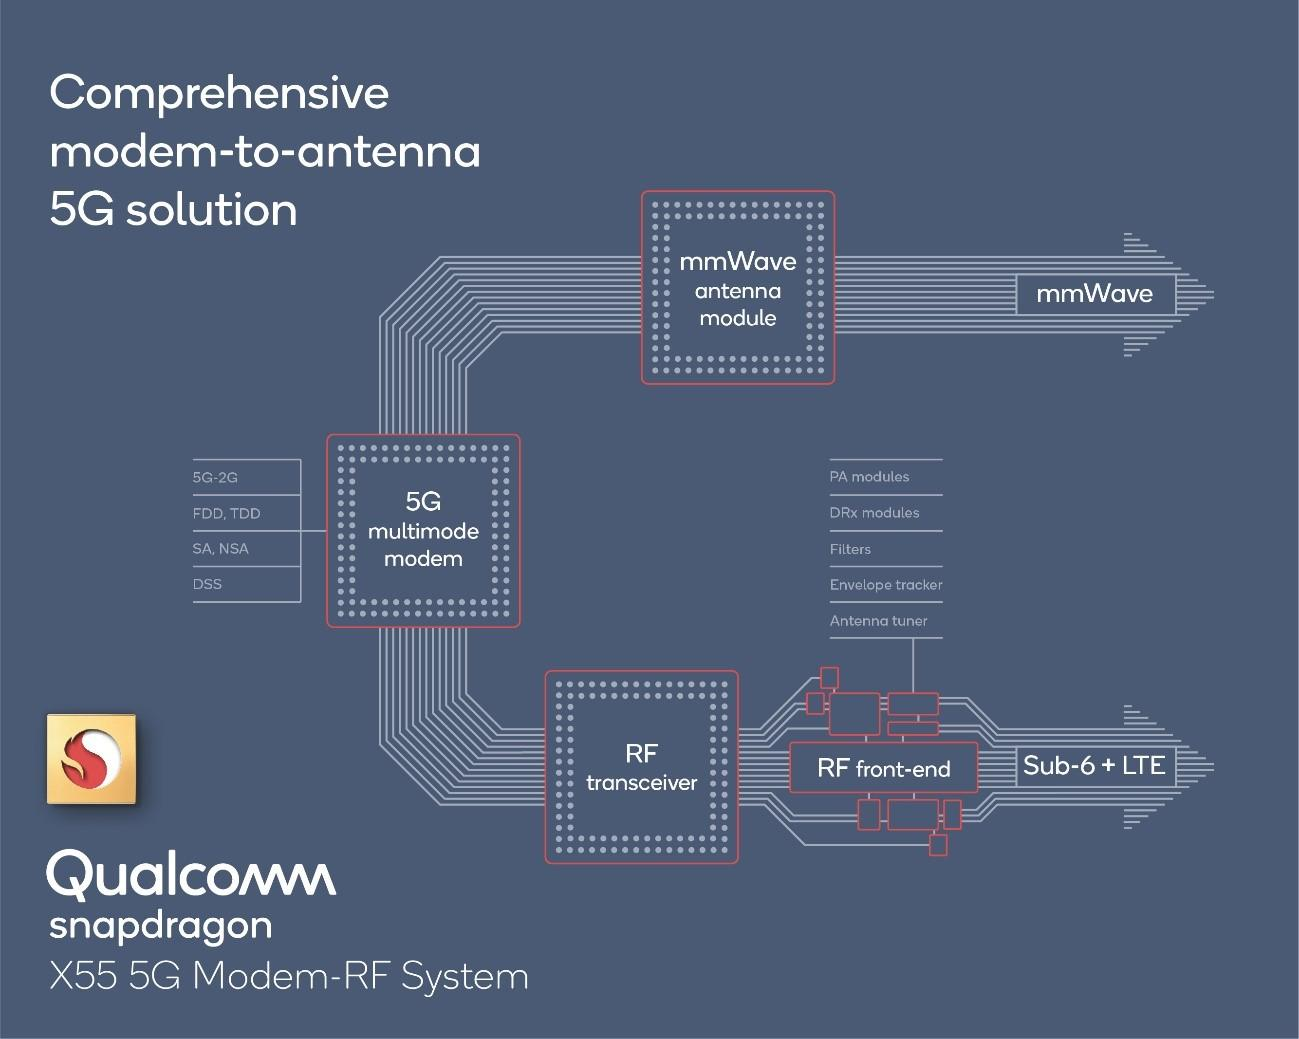 Qualcomm says it's going to pump out the 5G chipsets | TelecomTV